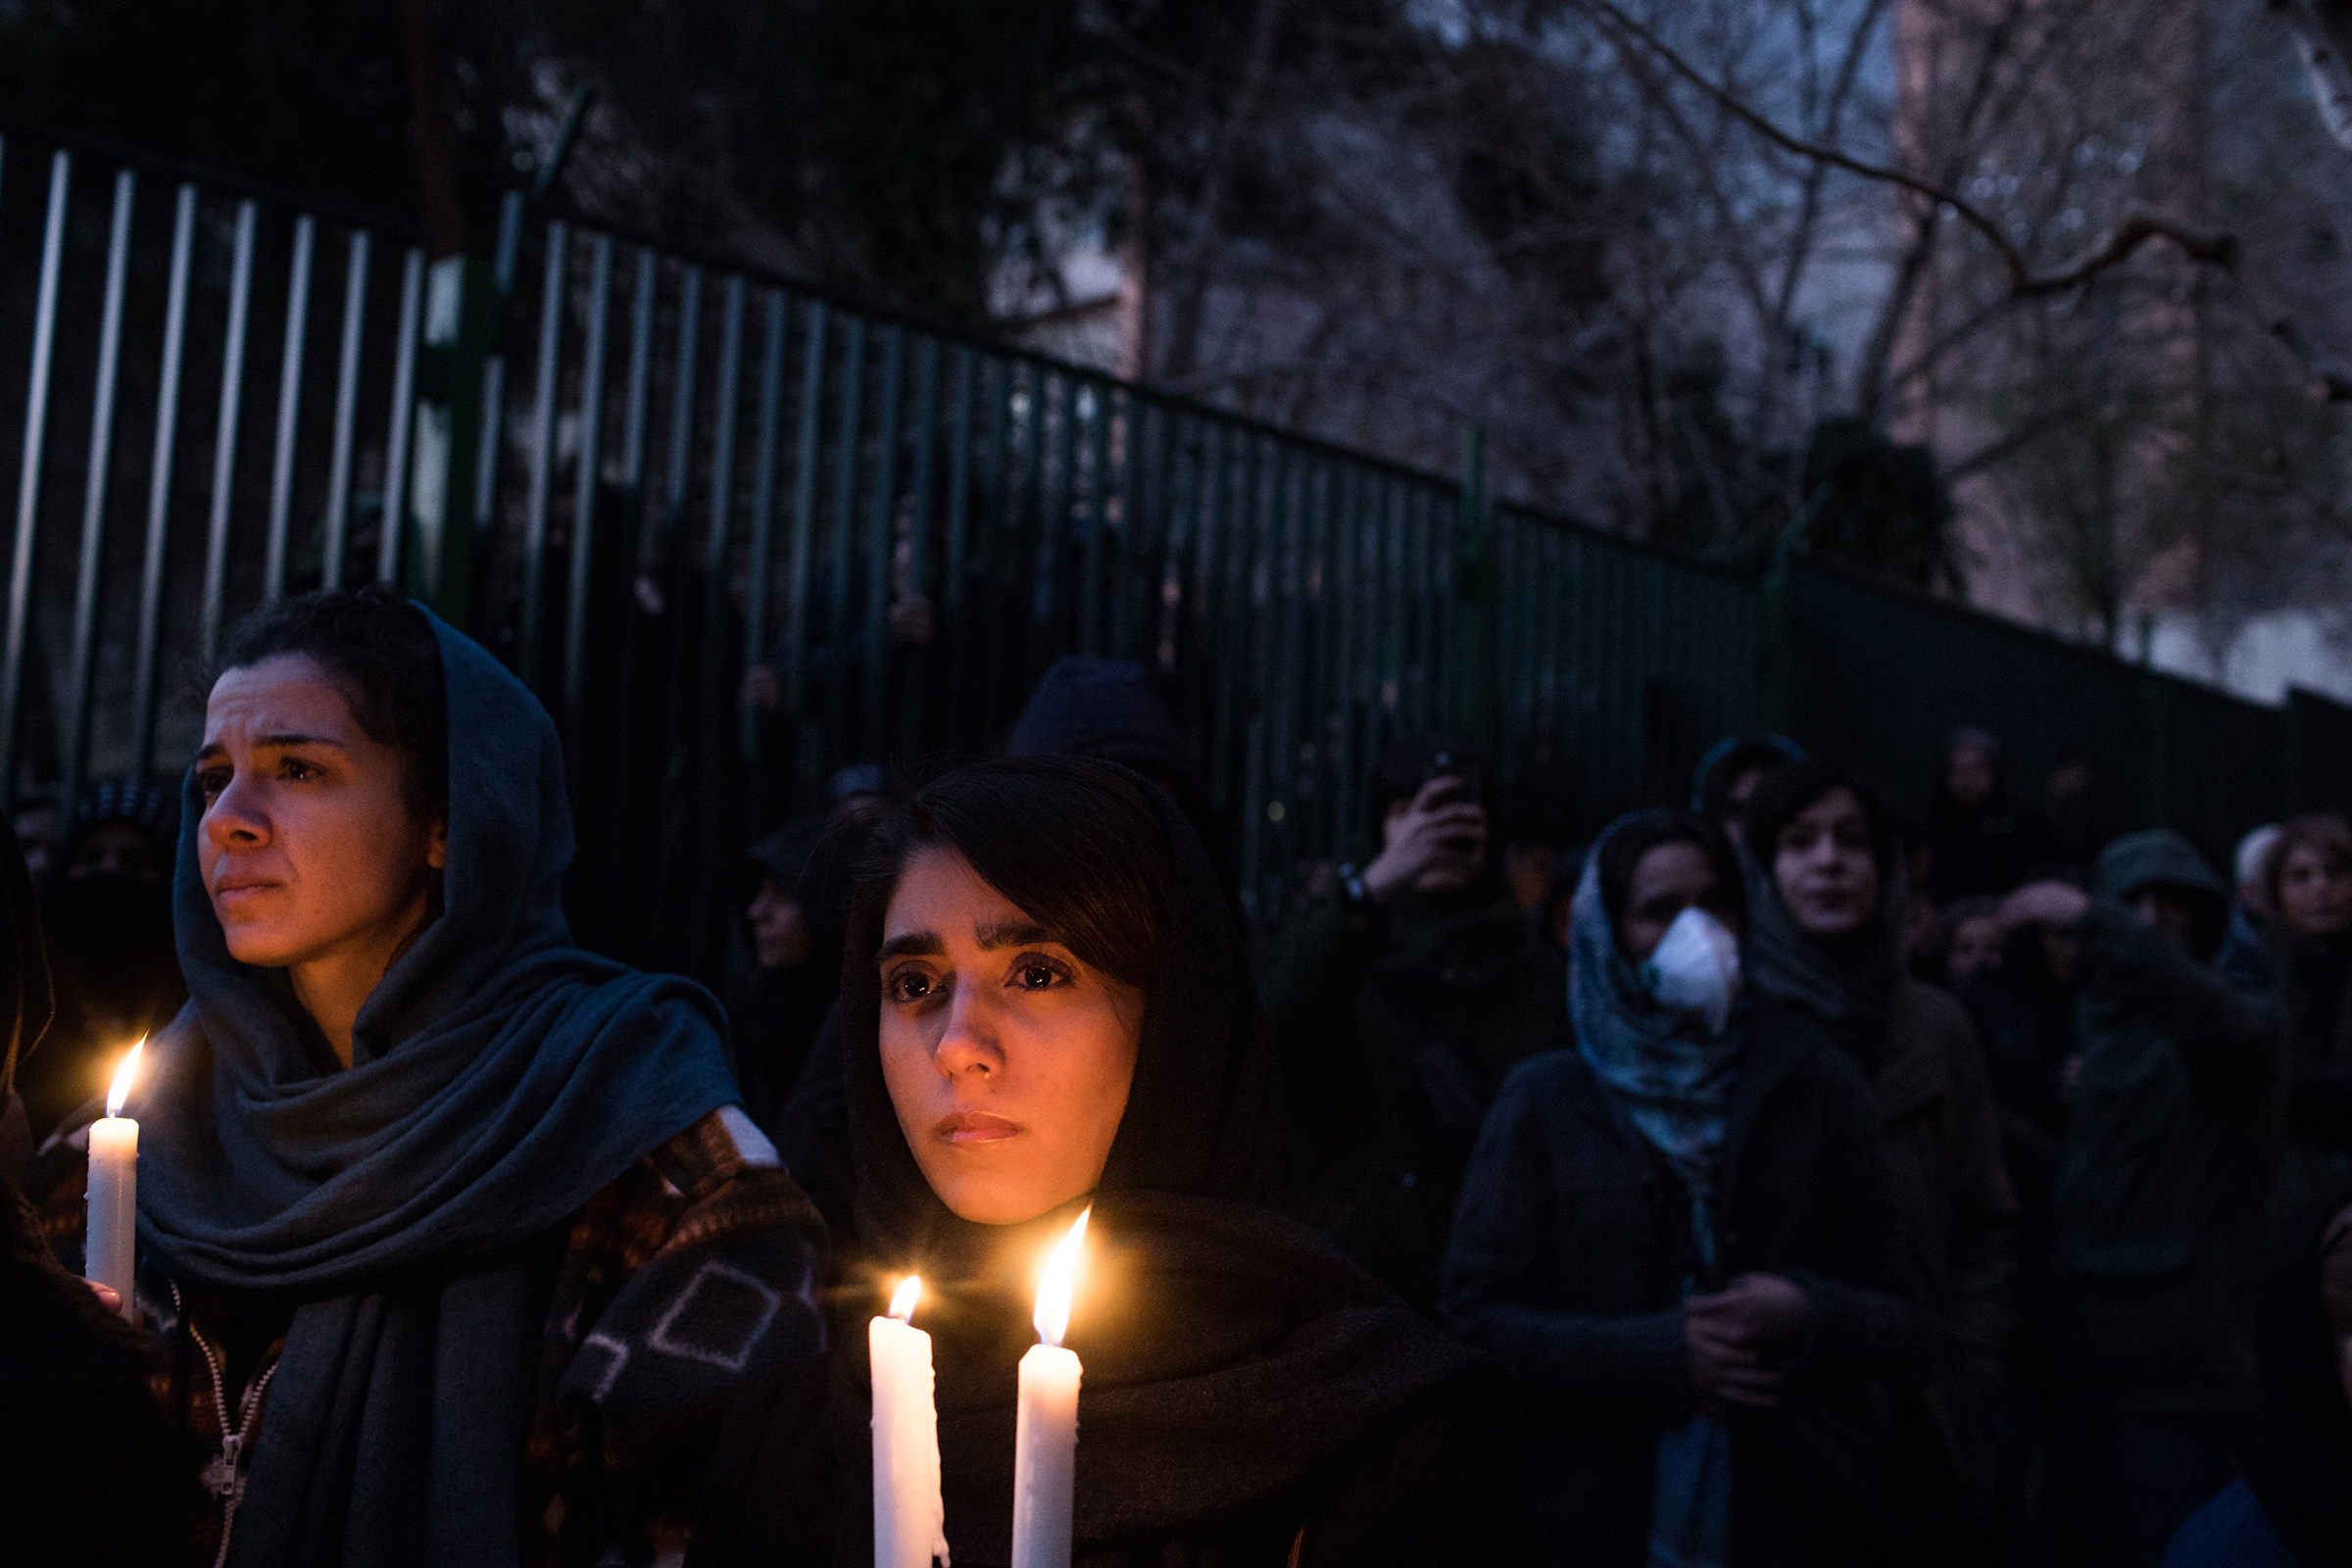 Demonstrators at a vigil in Tehran on Jan.11 mourn victims of a plane crash caused by Iran's military